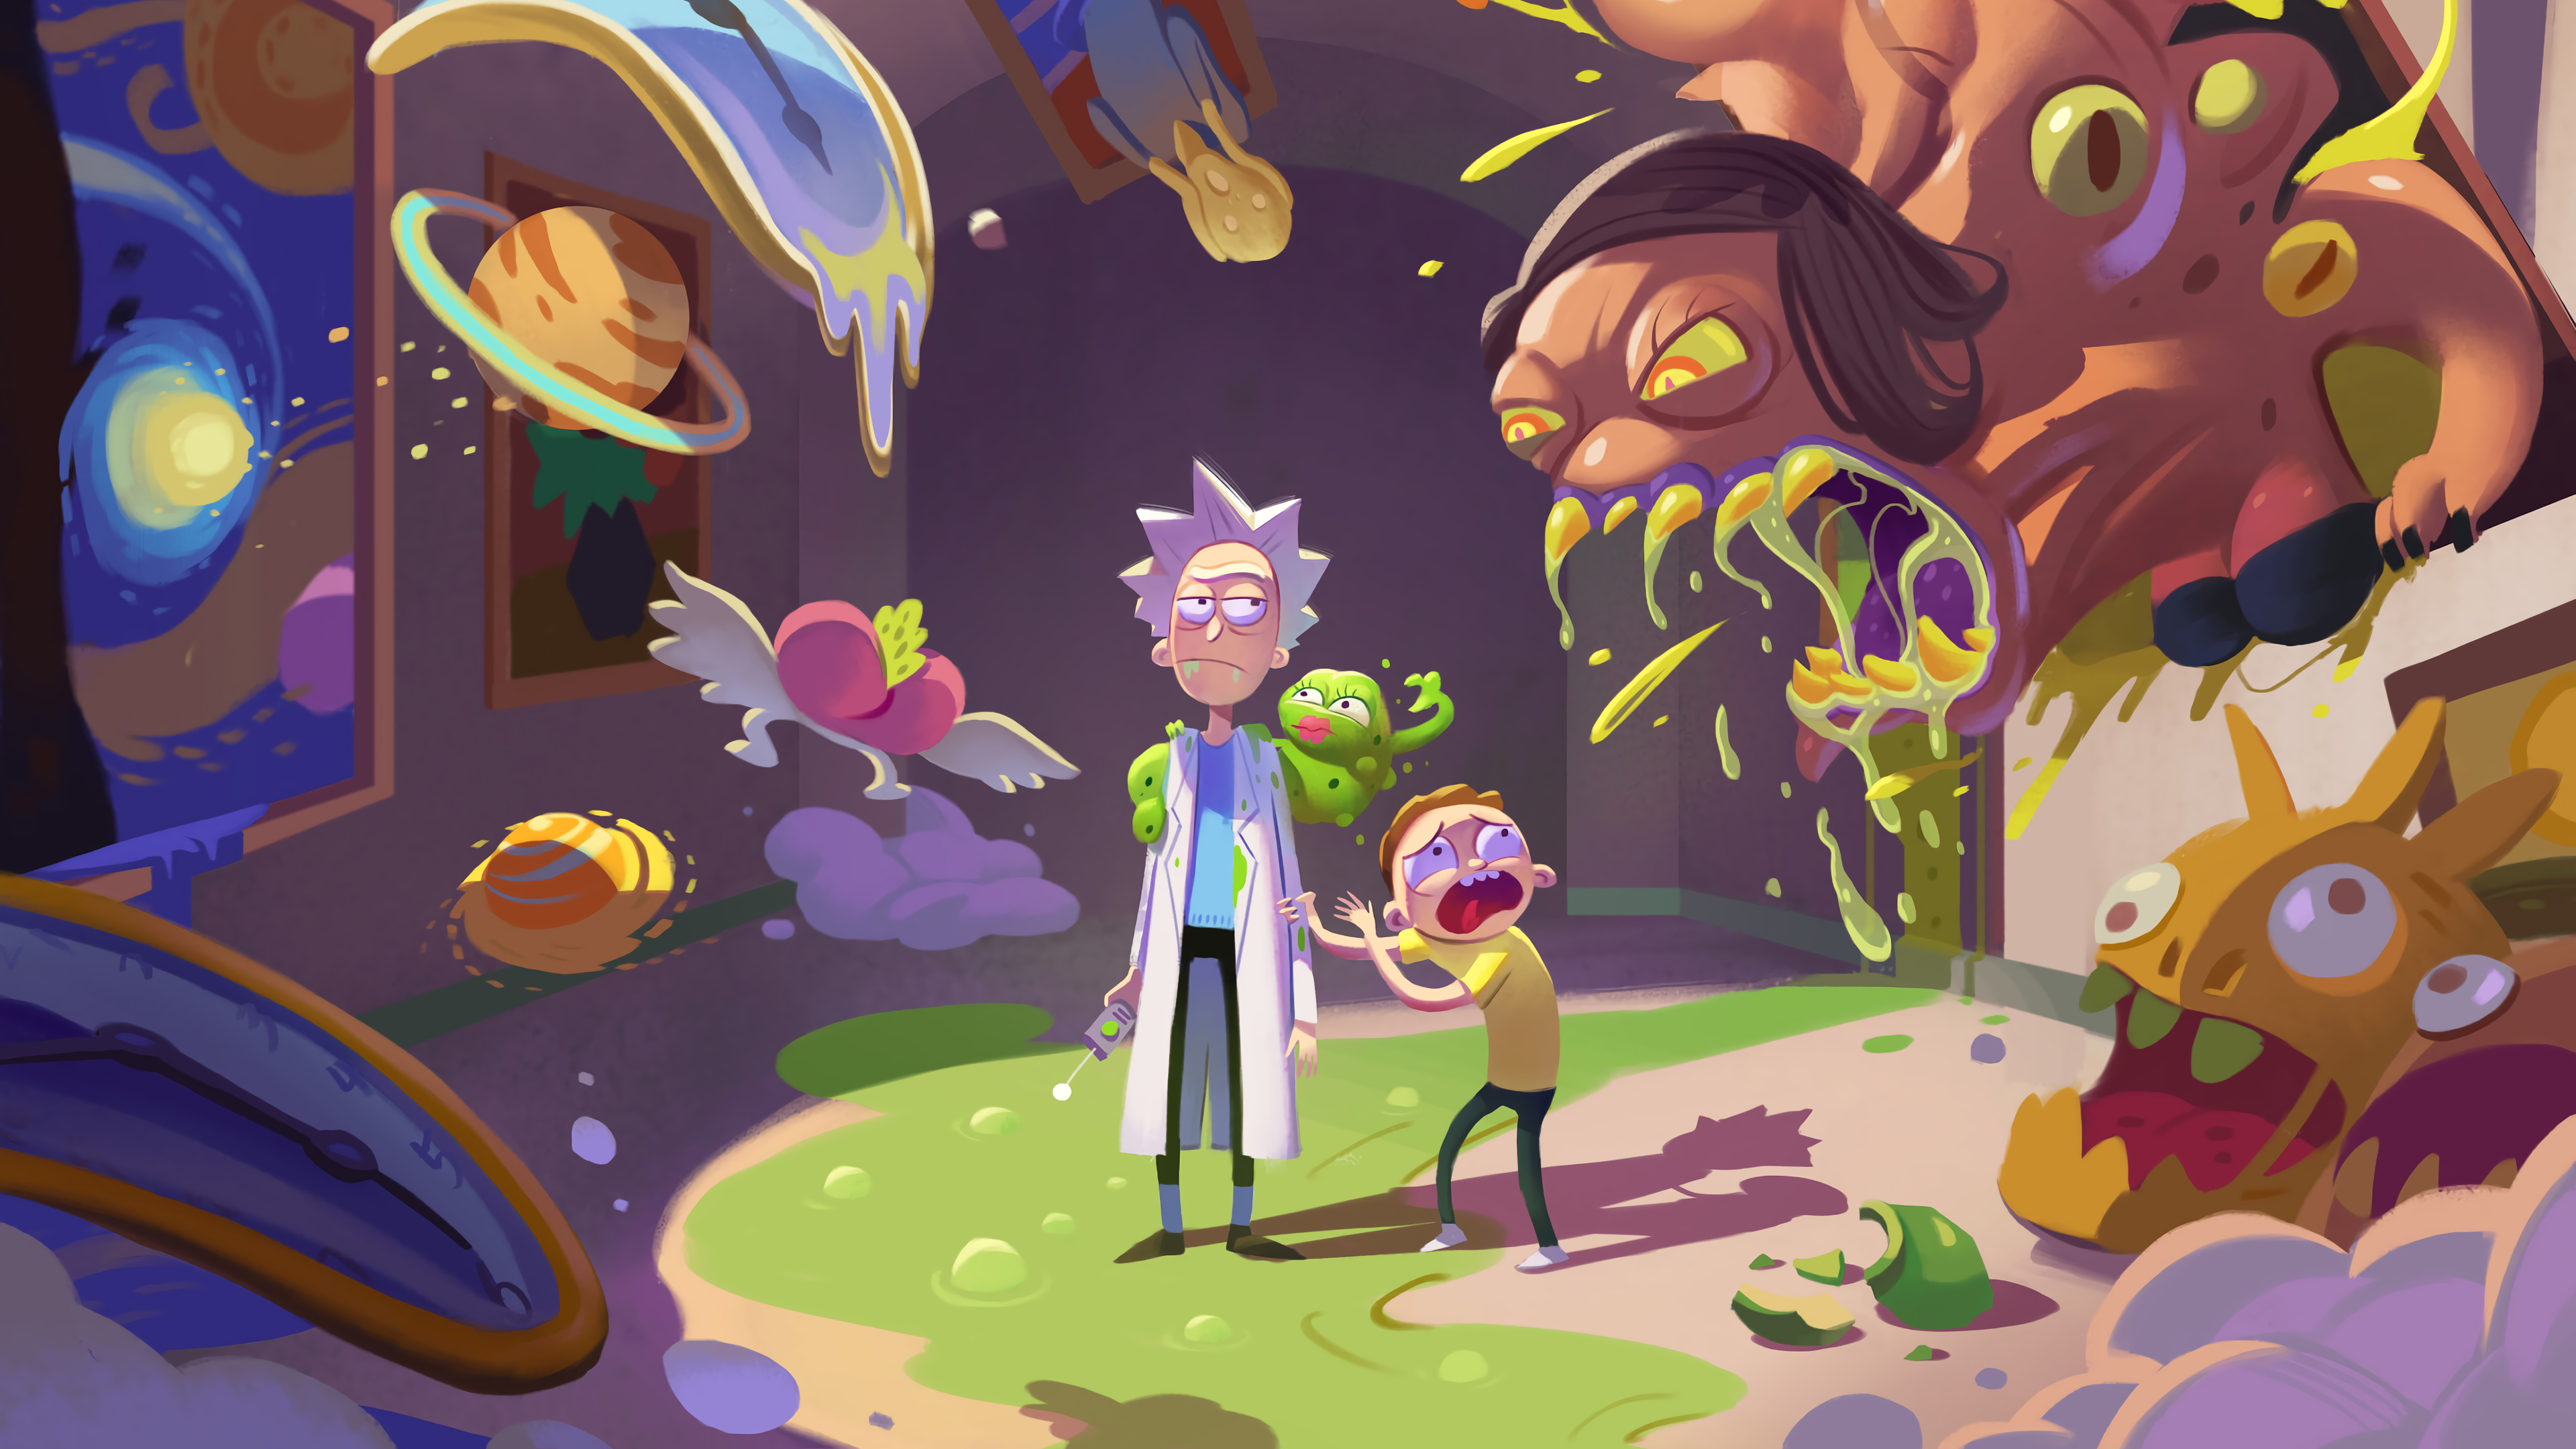 Rick And Morty Season 4 Hd Tv Shows 4k Wallpapers Images